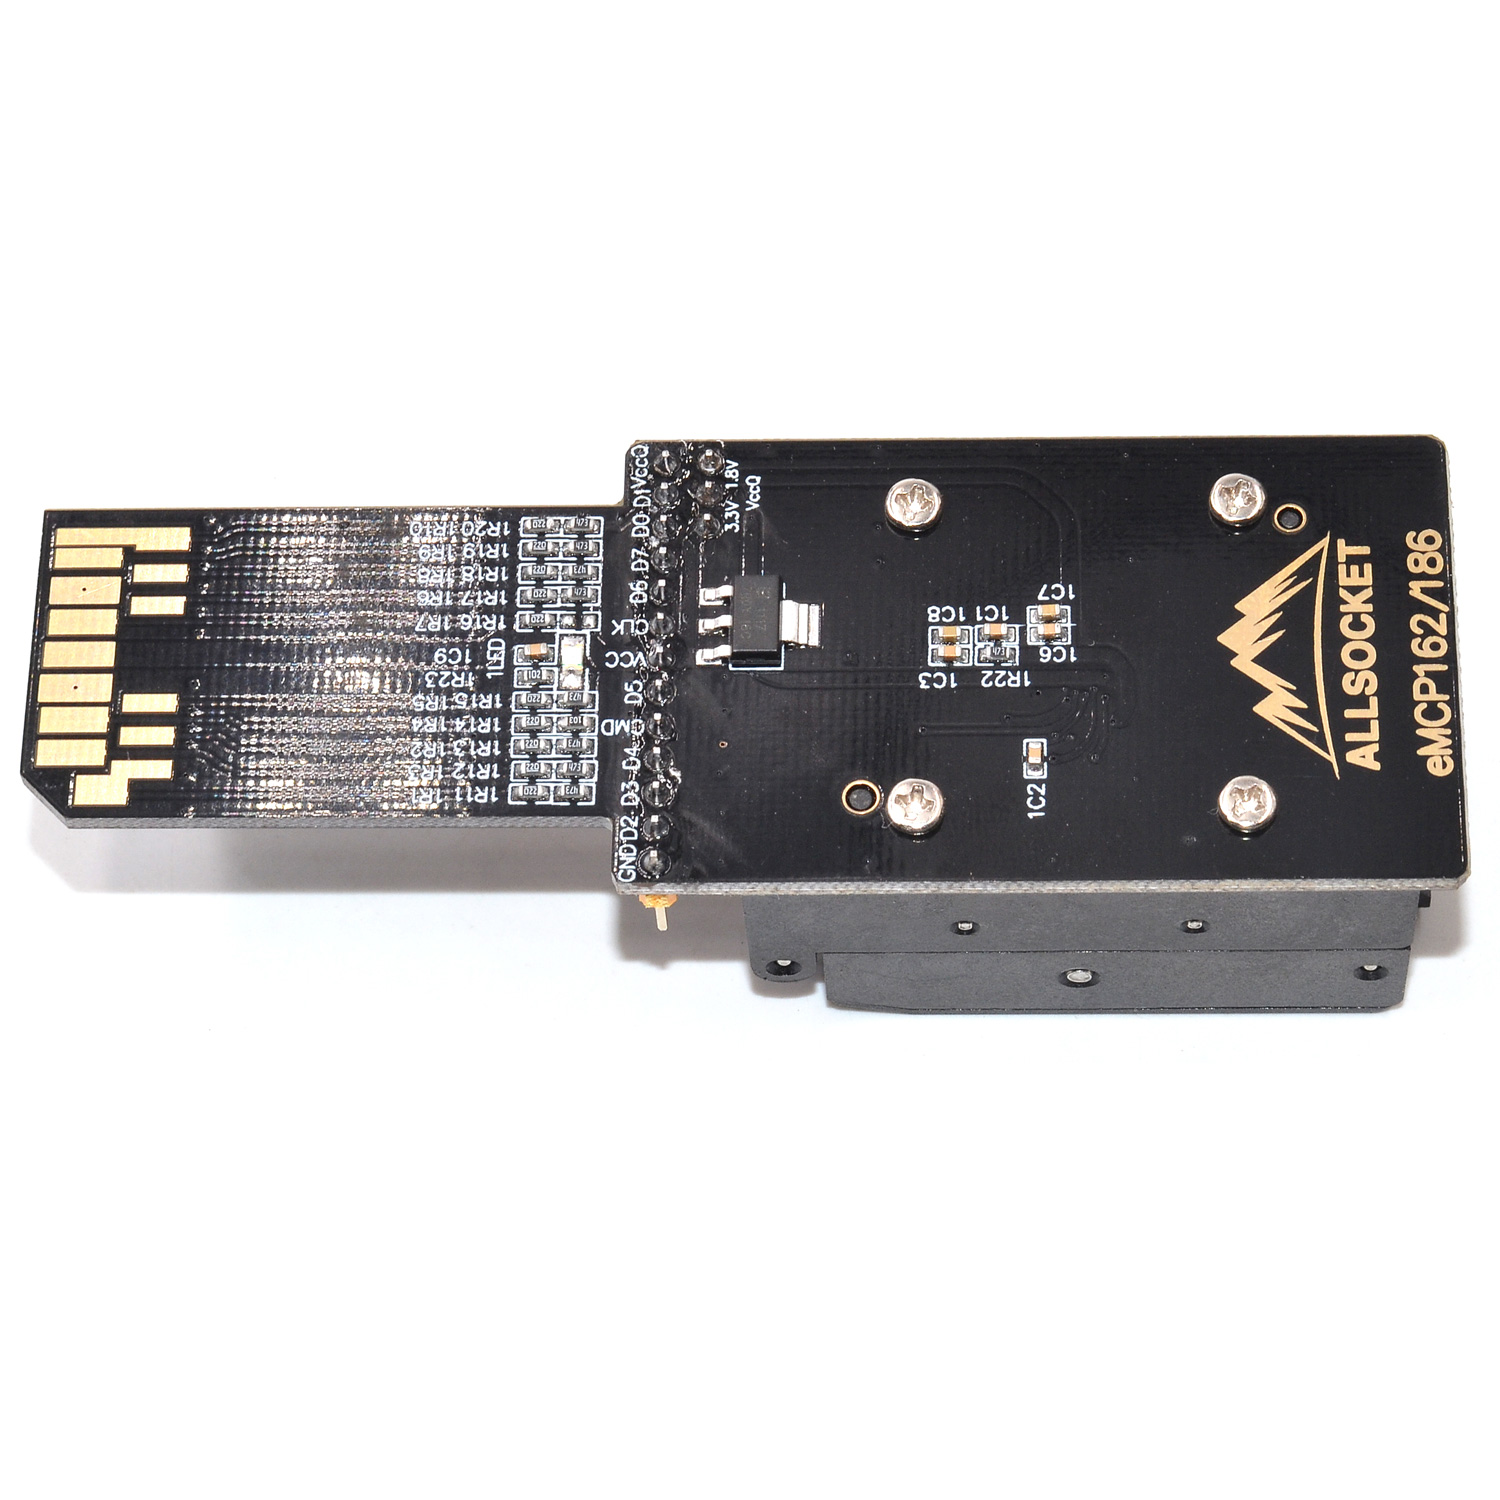 eMCP-BGA/eMCP186 BGA/eMCP162 Socket eMCP186 eMCP162 reader Socket DS3000-SD-emcp162+emcp186 Socket High quality IC eMCP162/186 reader for eMCP/BGA/eMCP186 BGA/eMCP162 package 11